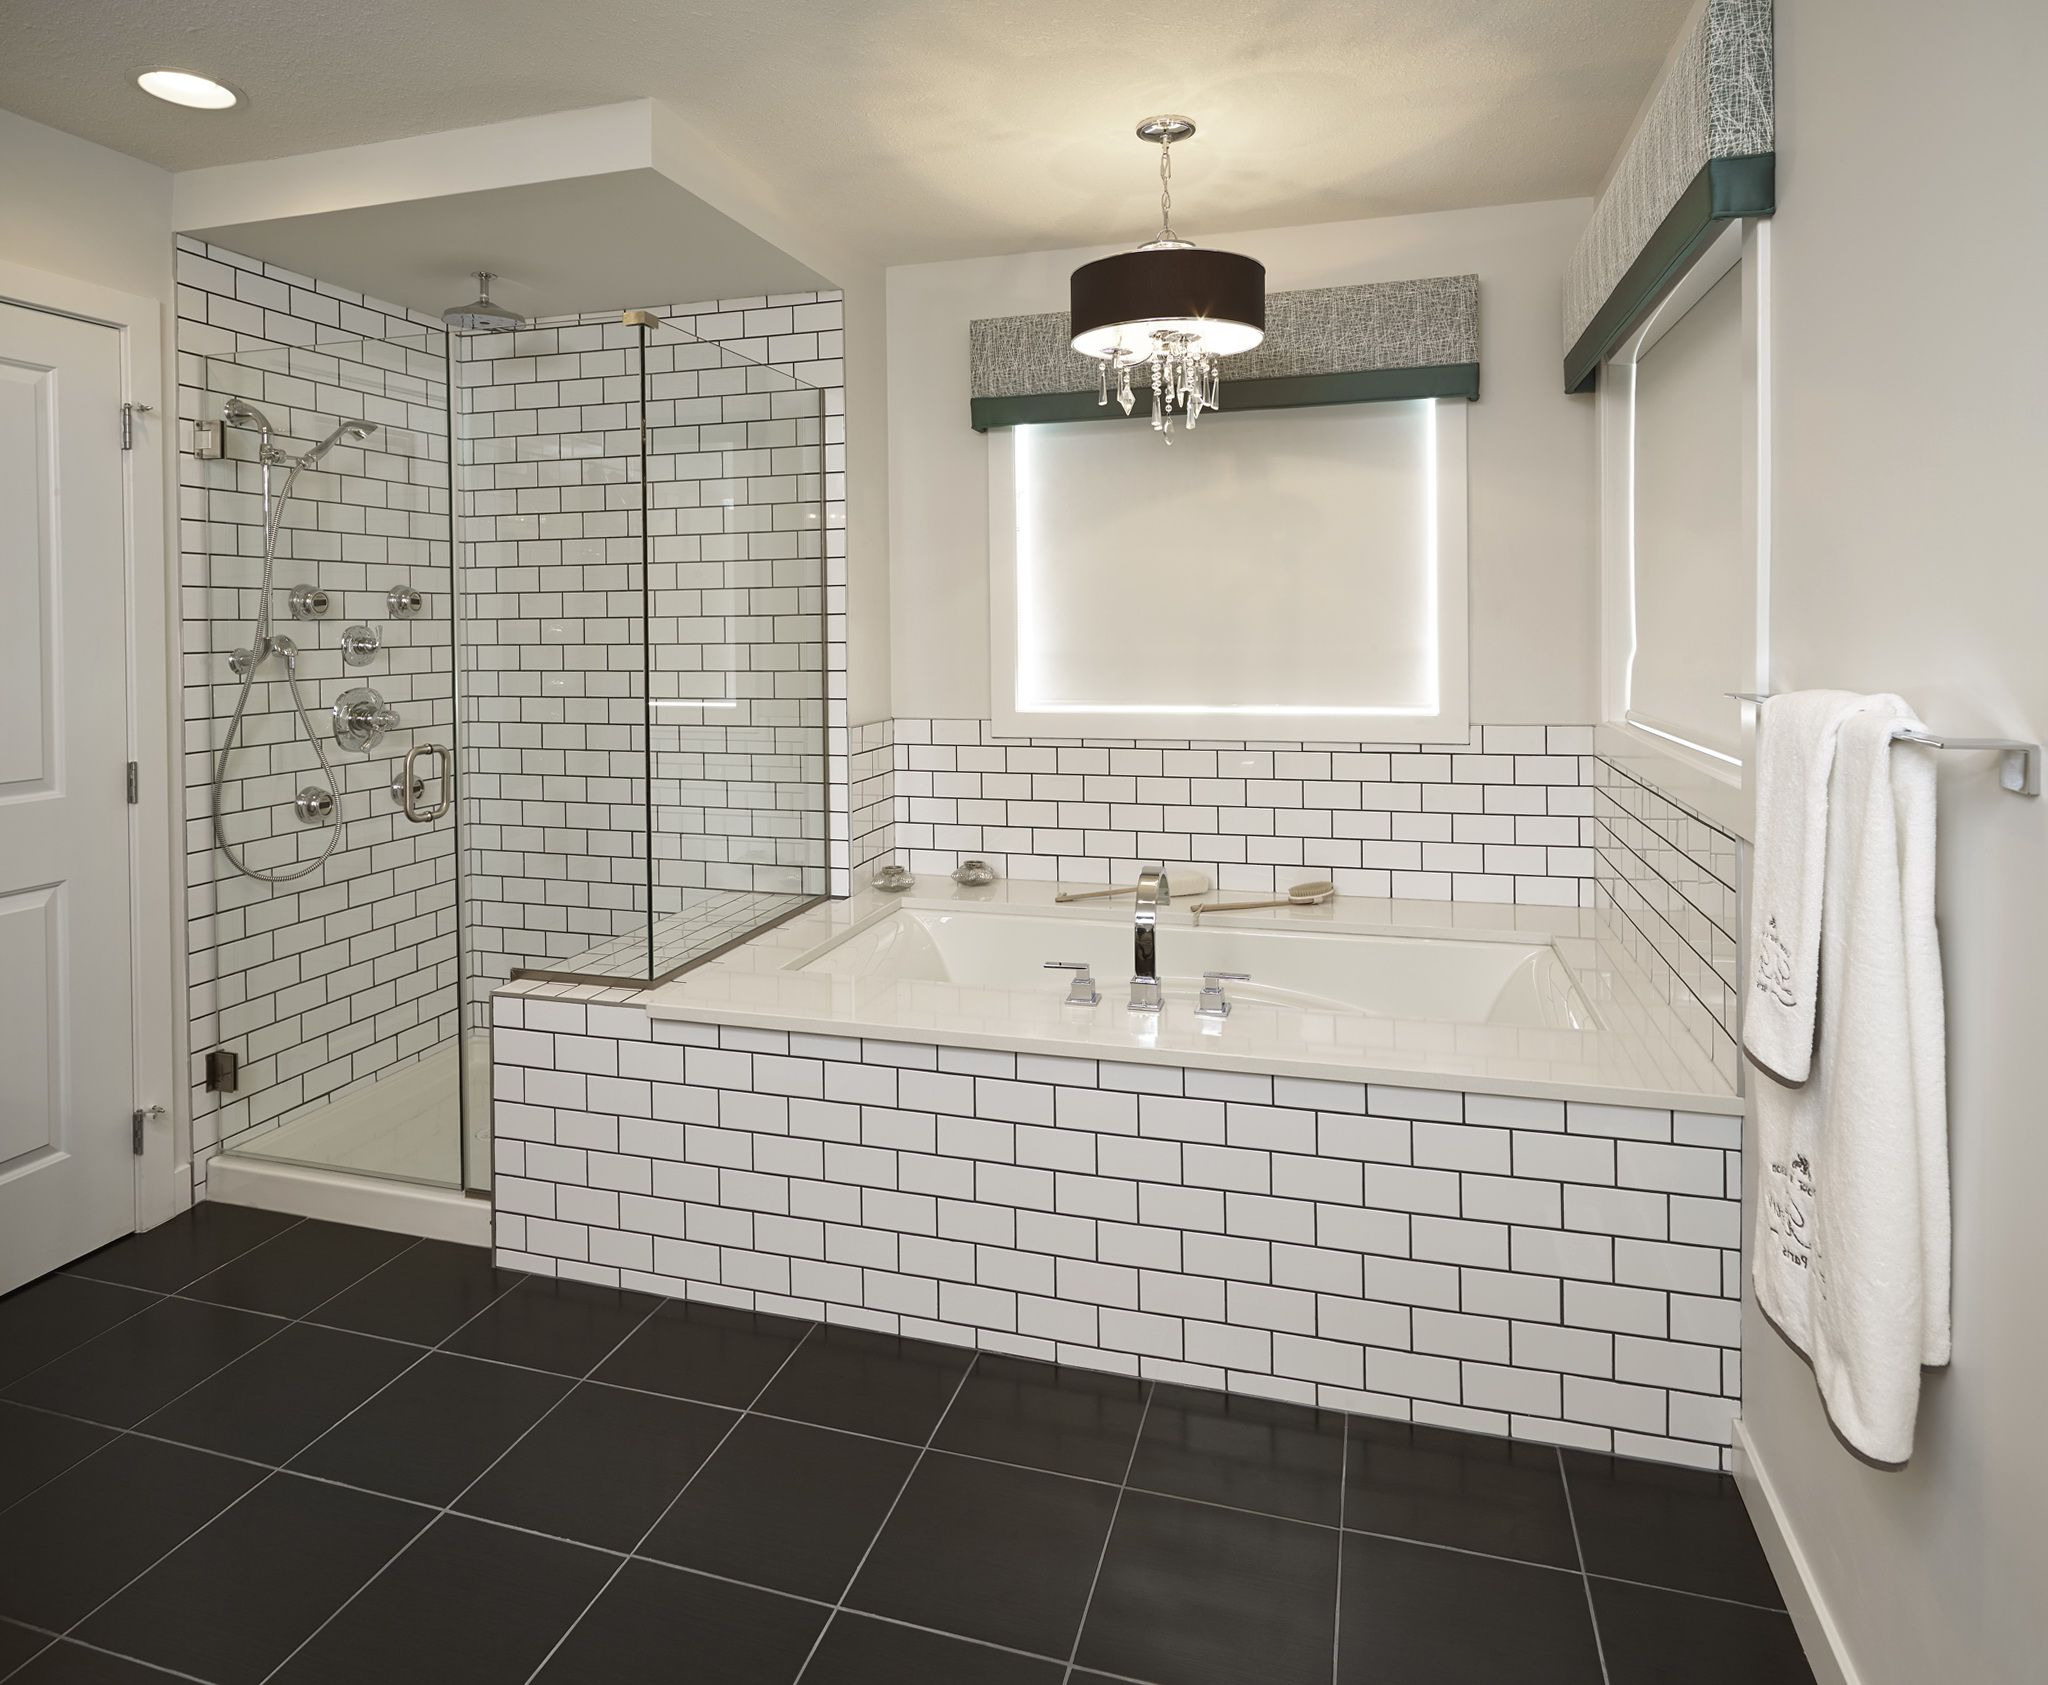 Top Tips On Choosing The Shower Tiles For Your Bathroom